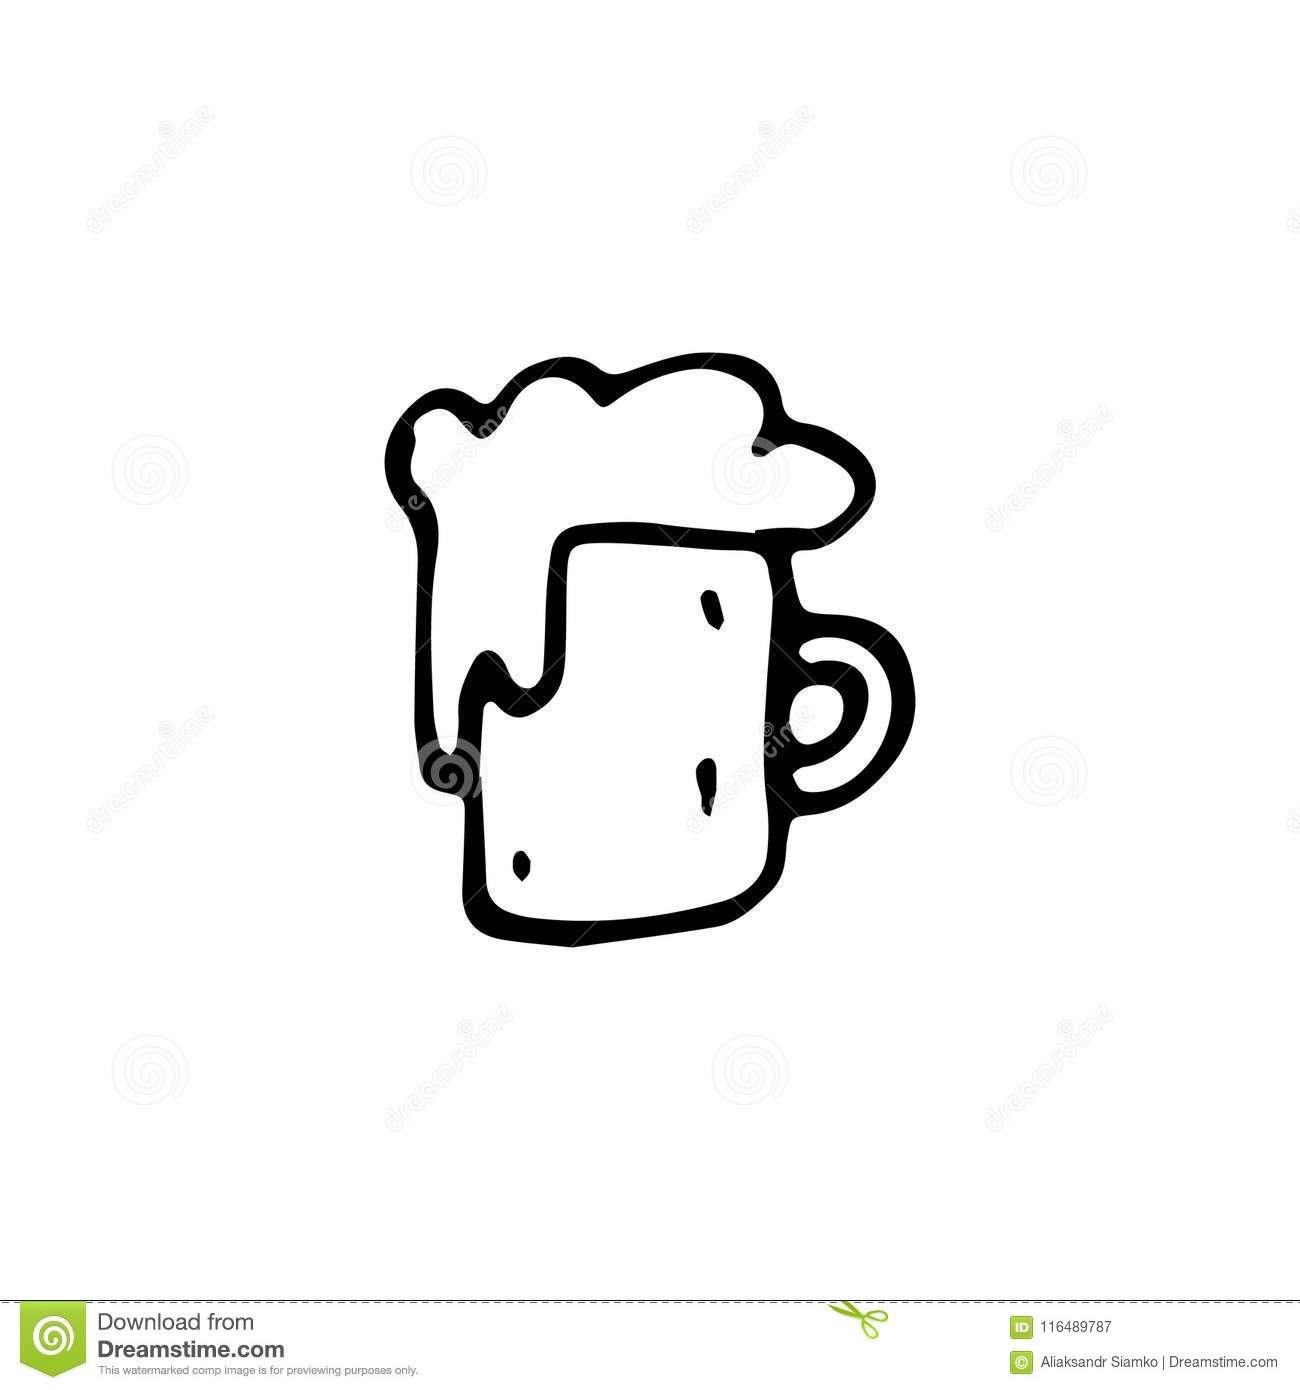 Handdrawn Cup Of Beer Doodle Icon Hand Drawn Black Sketch Sign Stock Vector Illustration Of Drawing Isolated 116489787